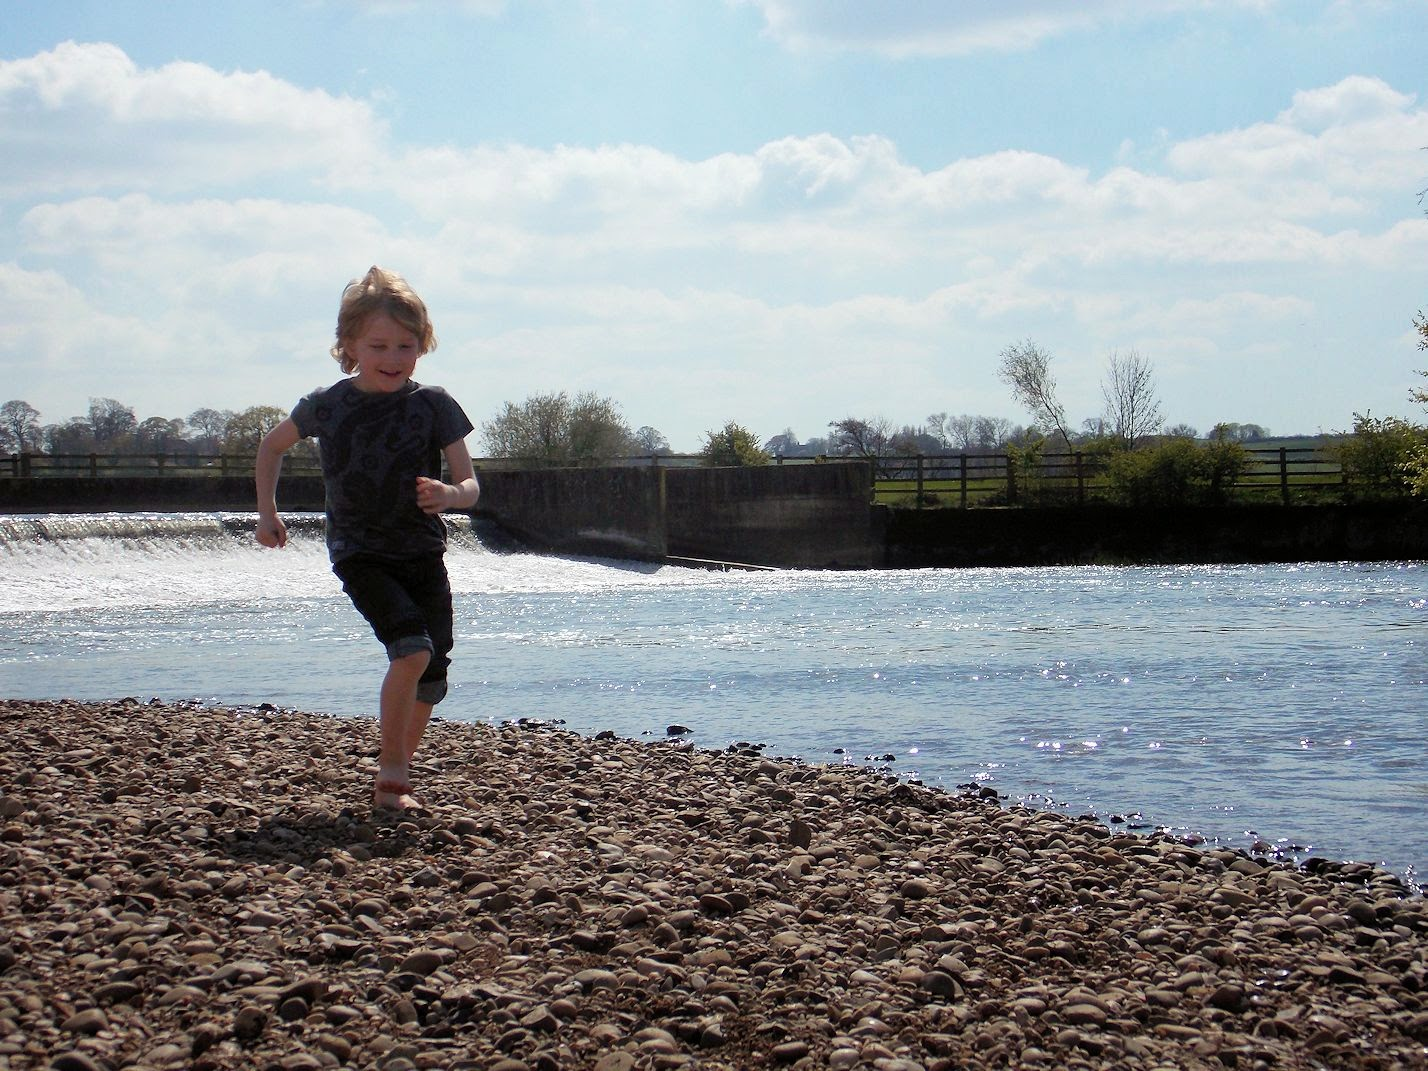 boy running at stony beach